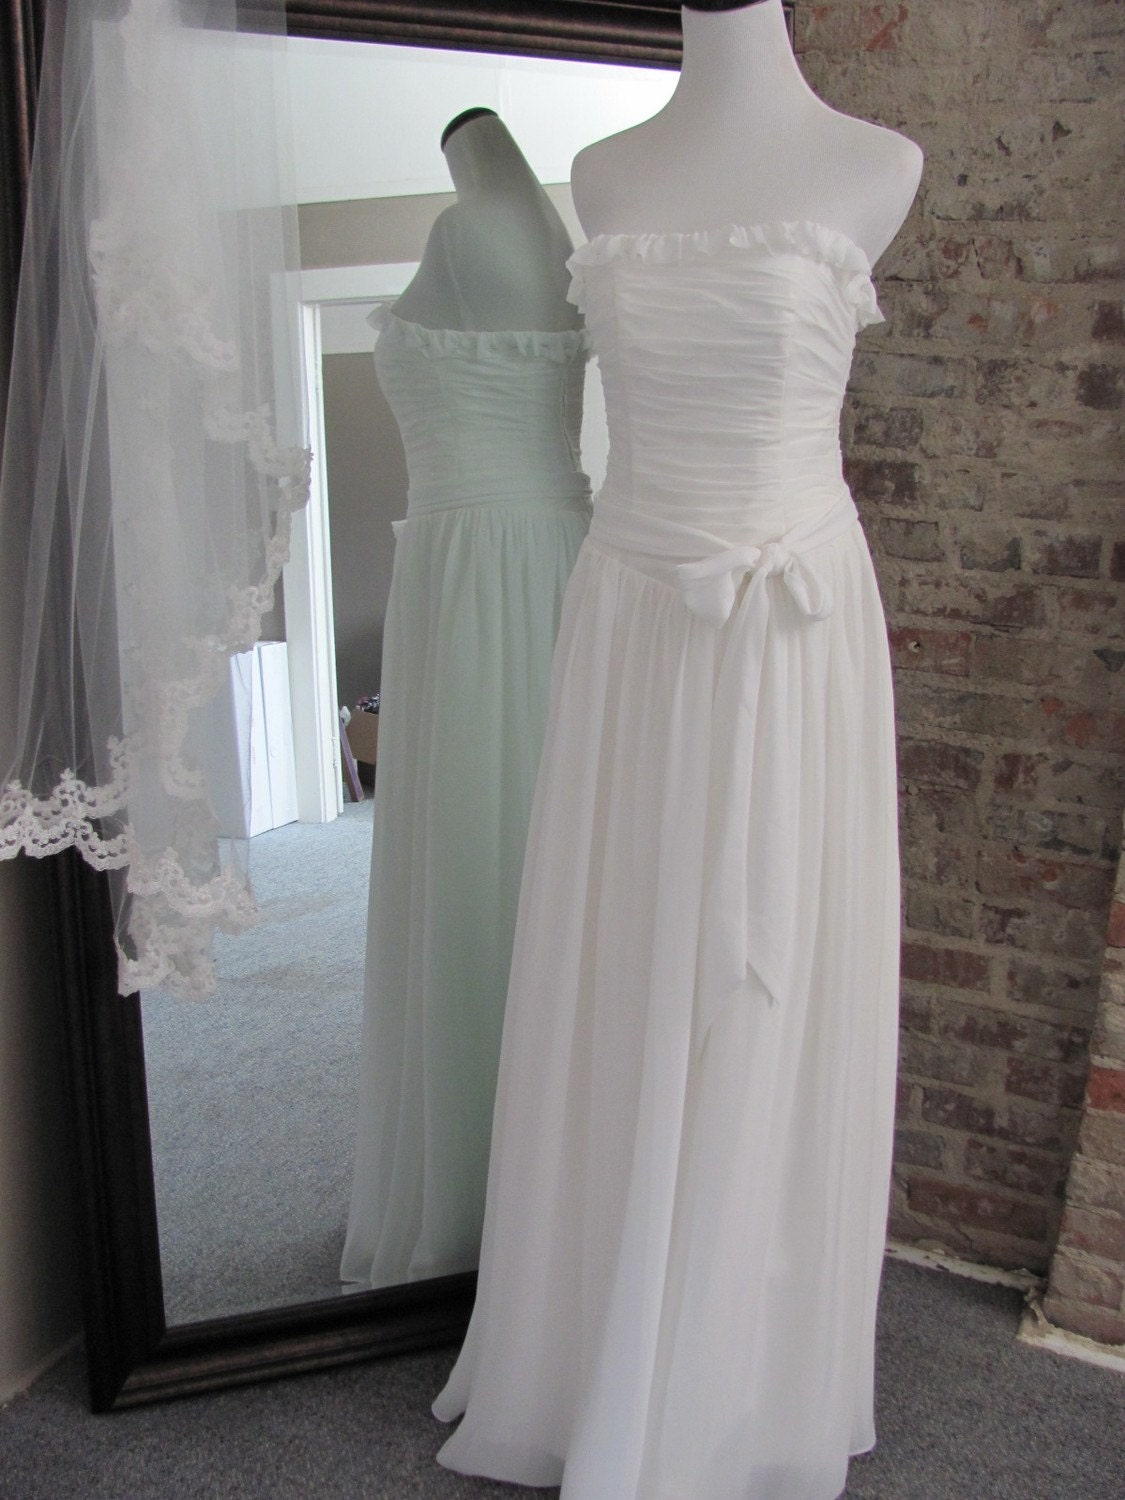 Short and Sweet Chiffon Bridal Gown (Full Length Variation)